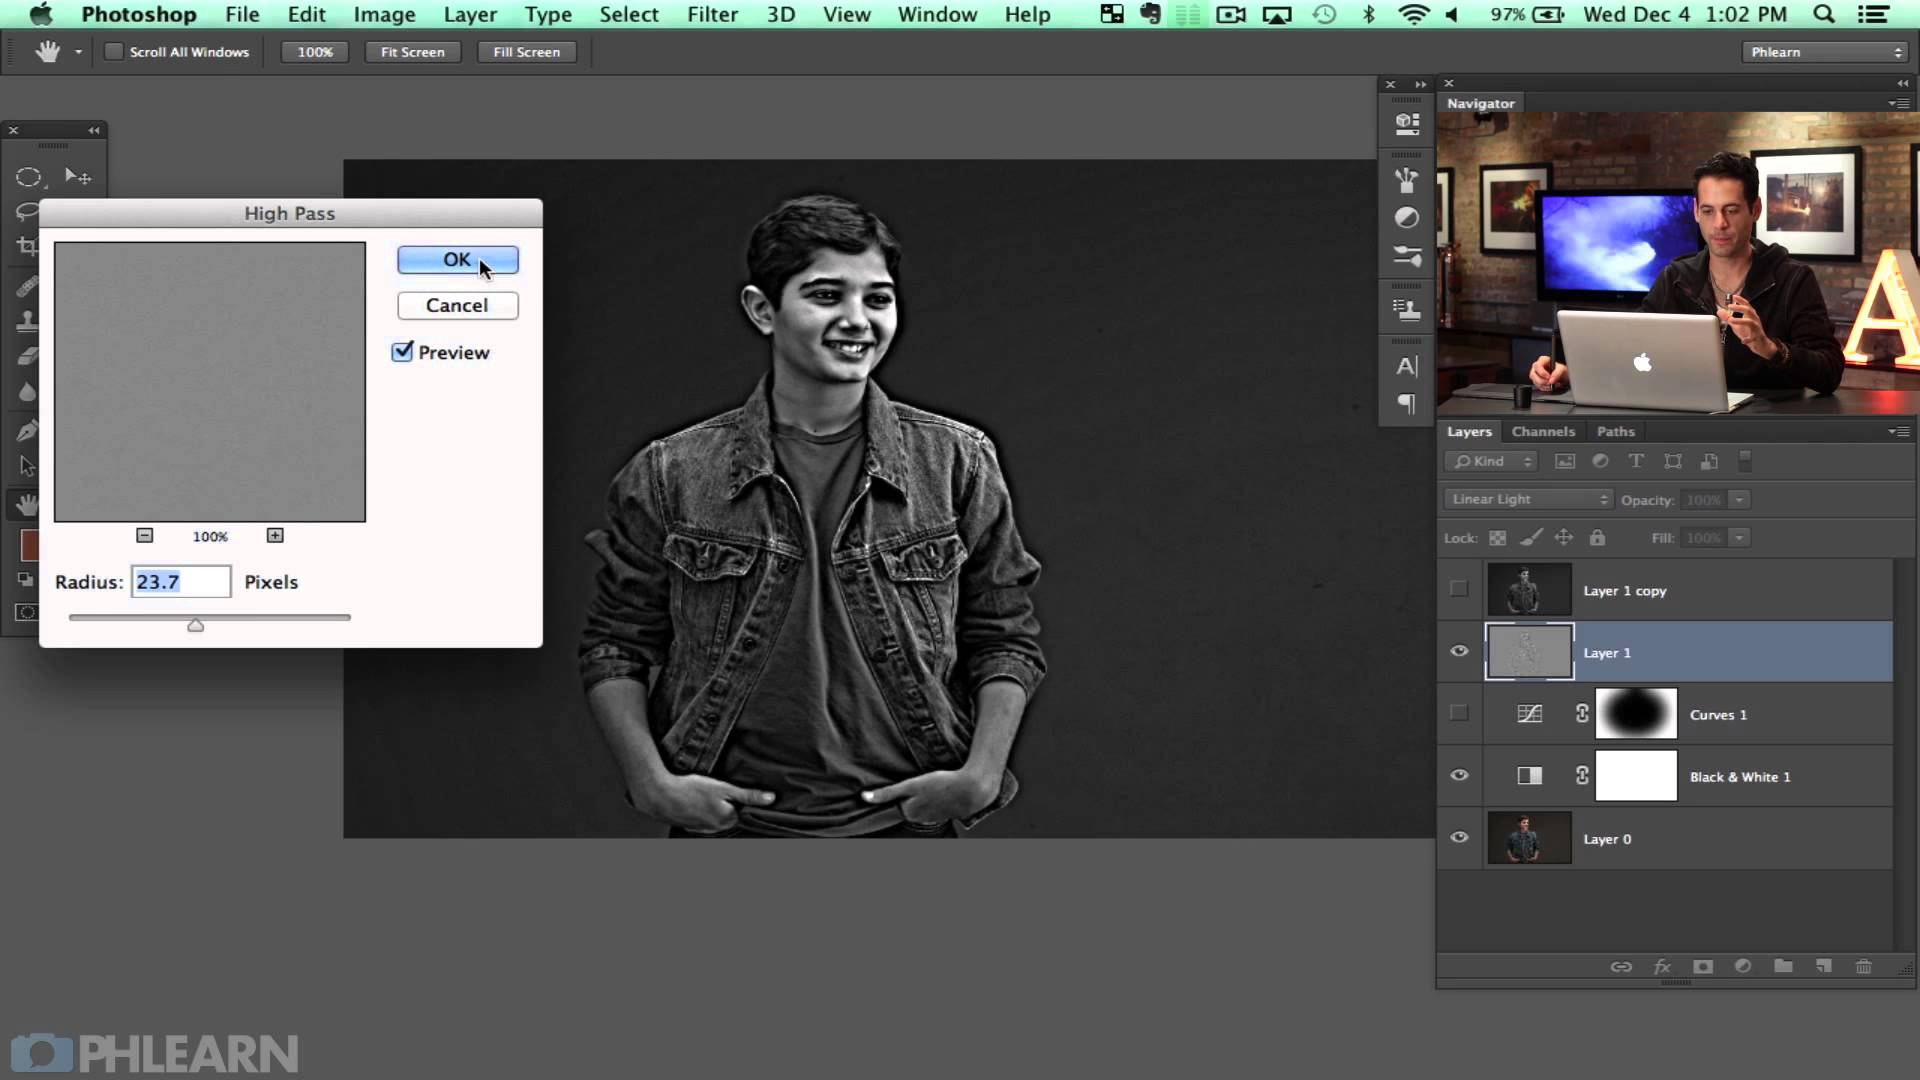 How to Stylize a Black and White Photo in Photoshop